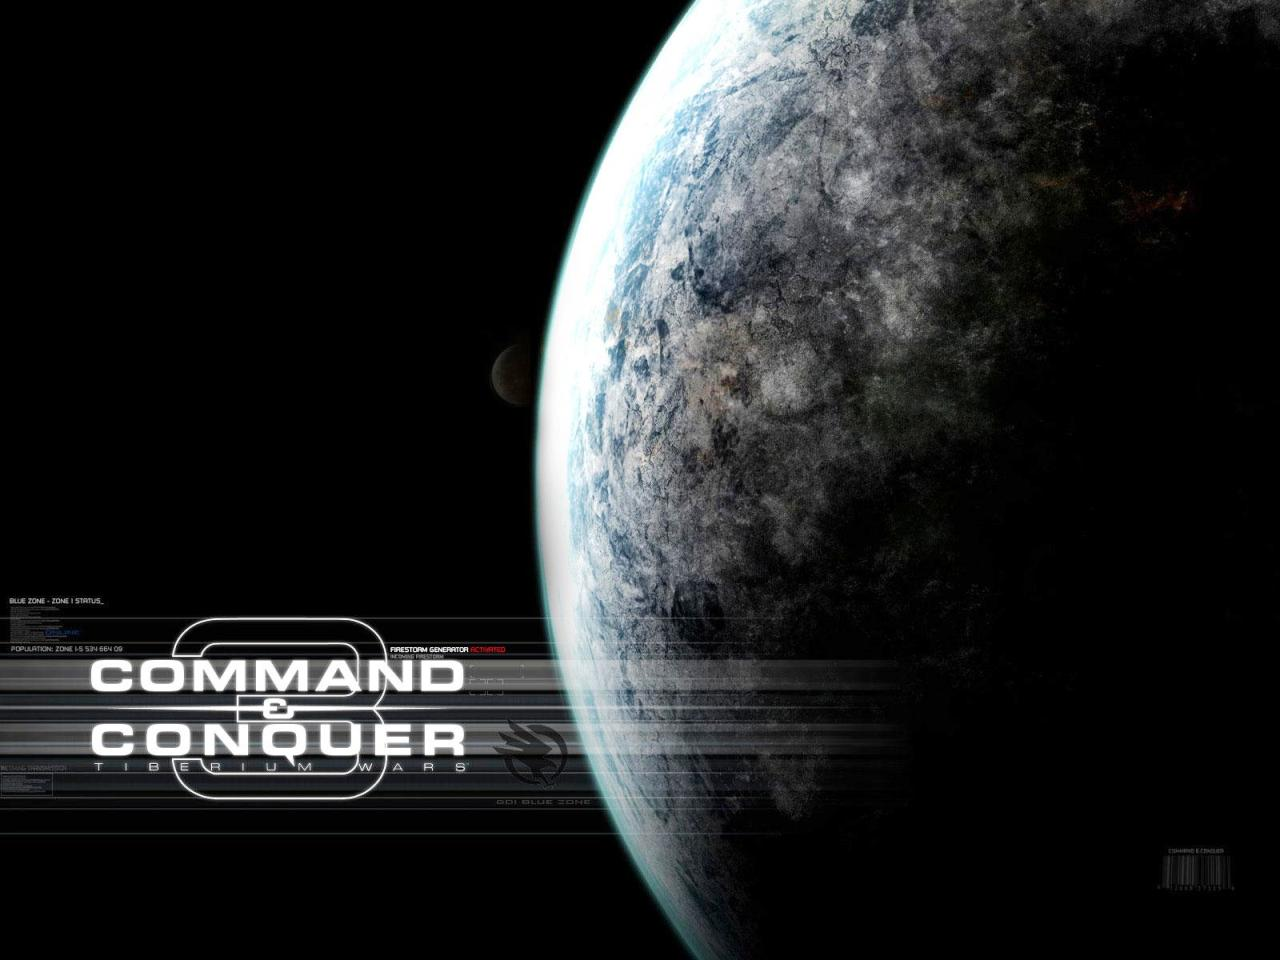 Command And Conquer Wallpaper: Command And Conquer 3 Wallpapers (56 Wallpapers)